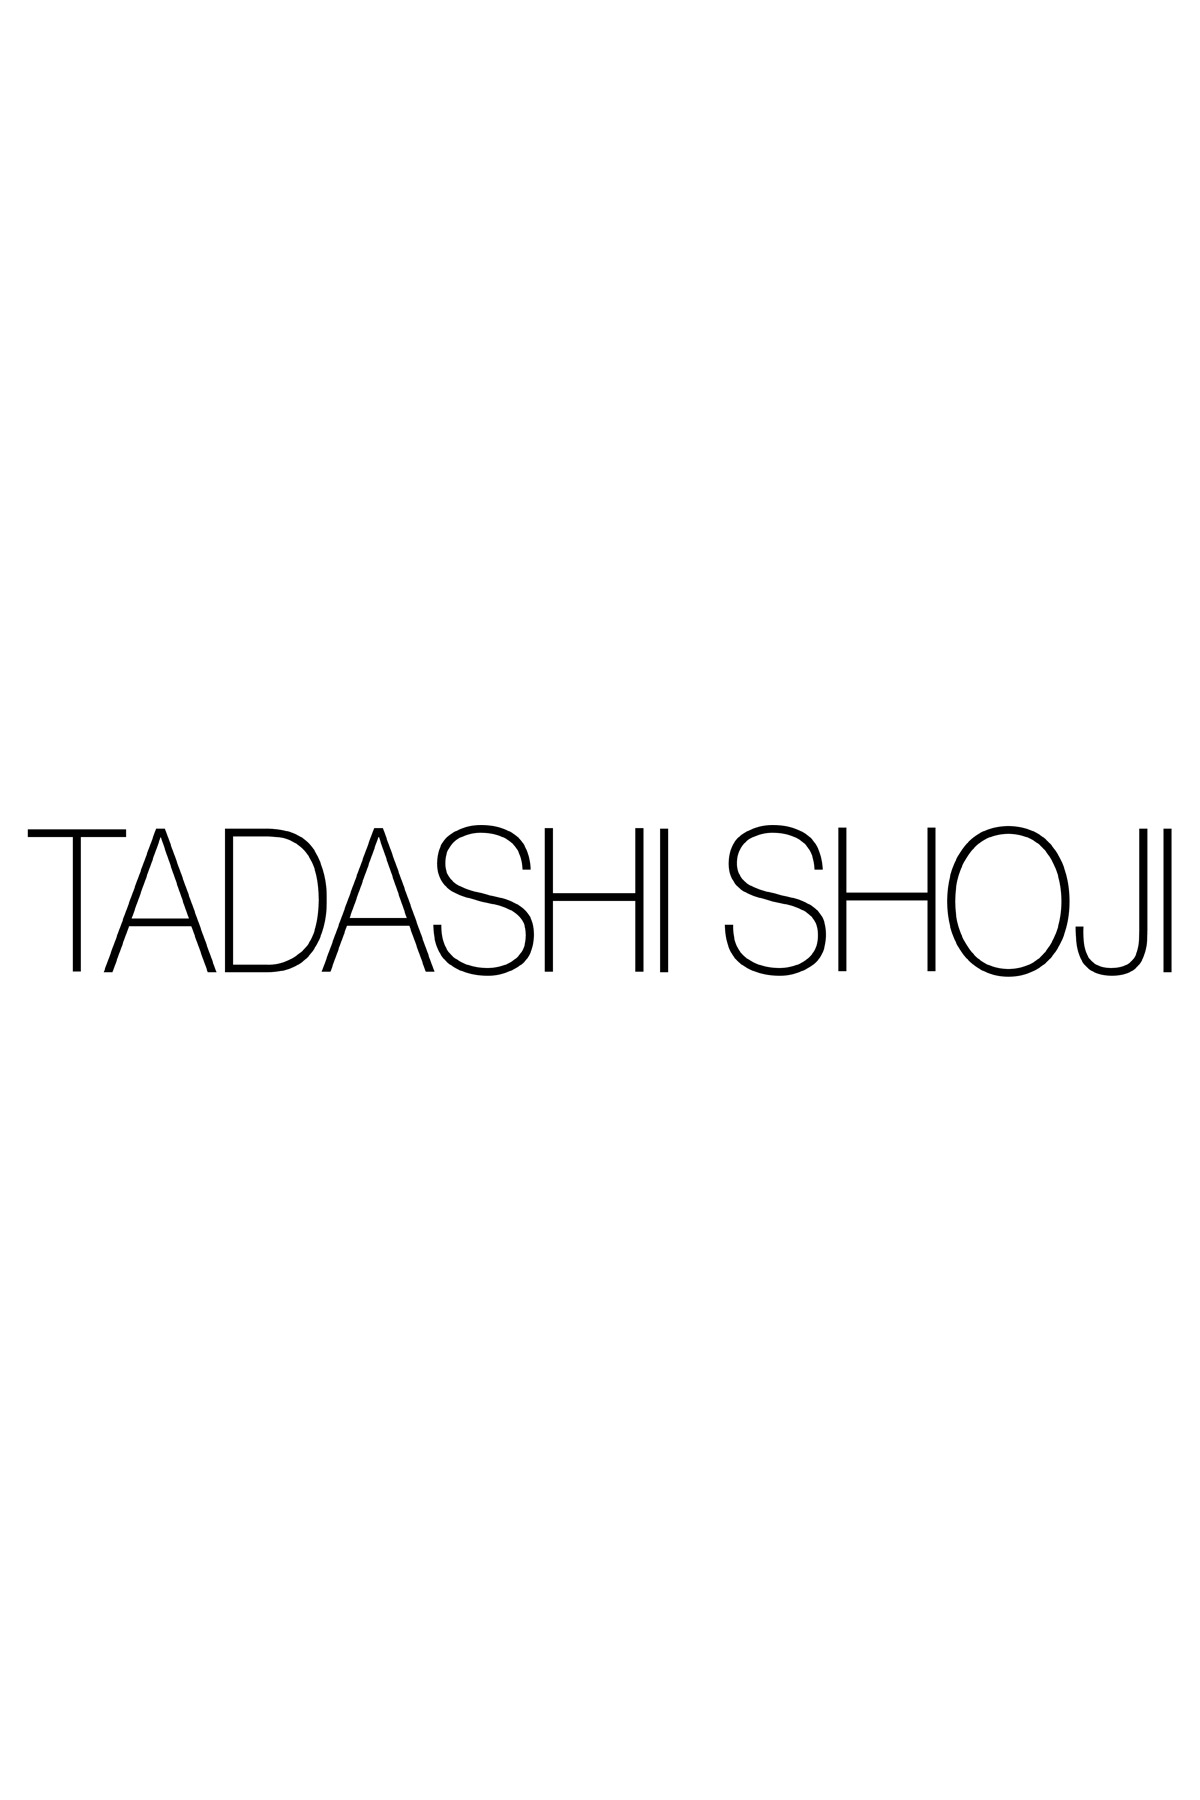 Tadashi Shoji - Corded Embroidery on Tulle 3/4 Sleeve Dress - Detail